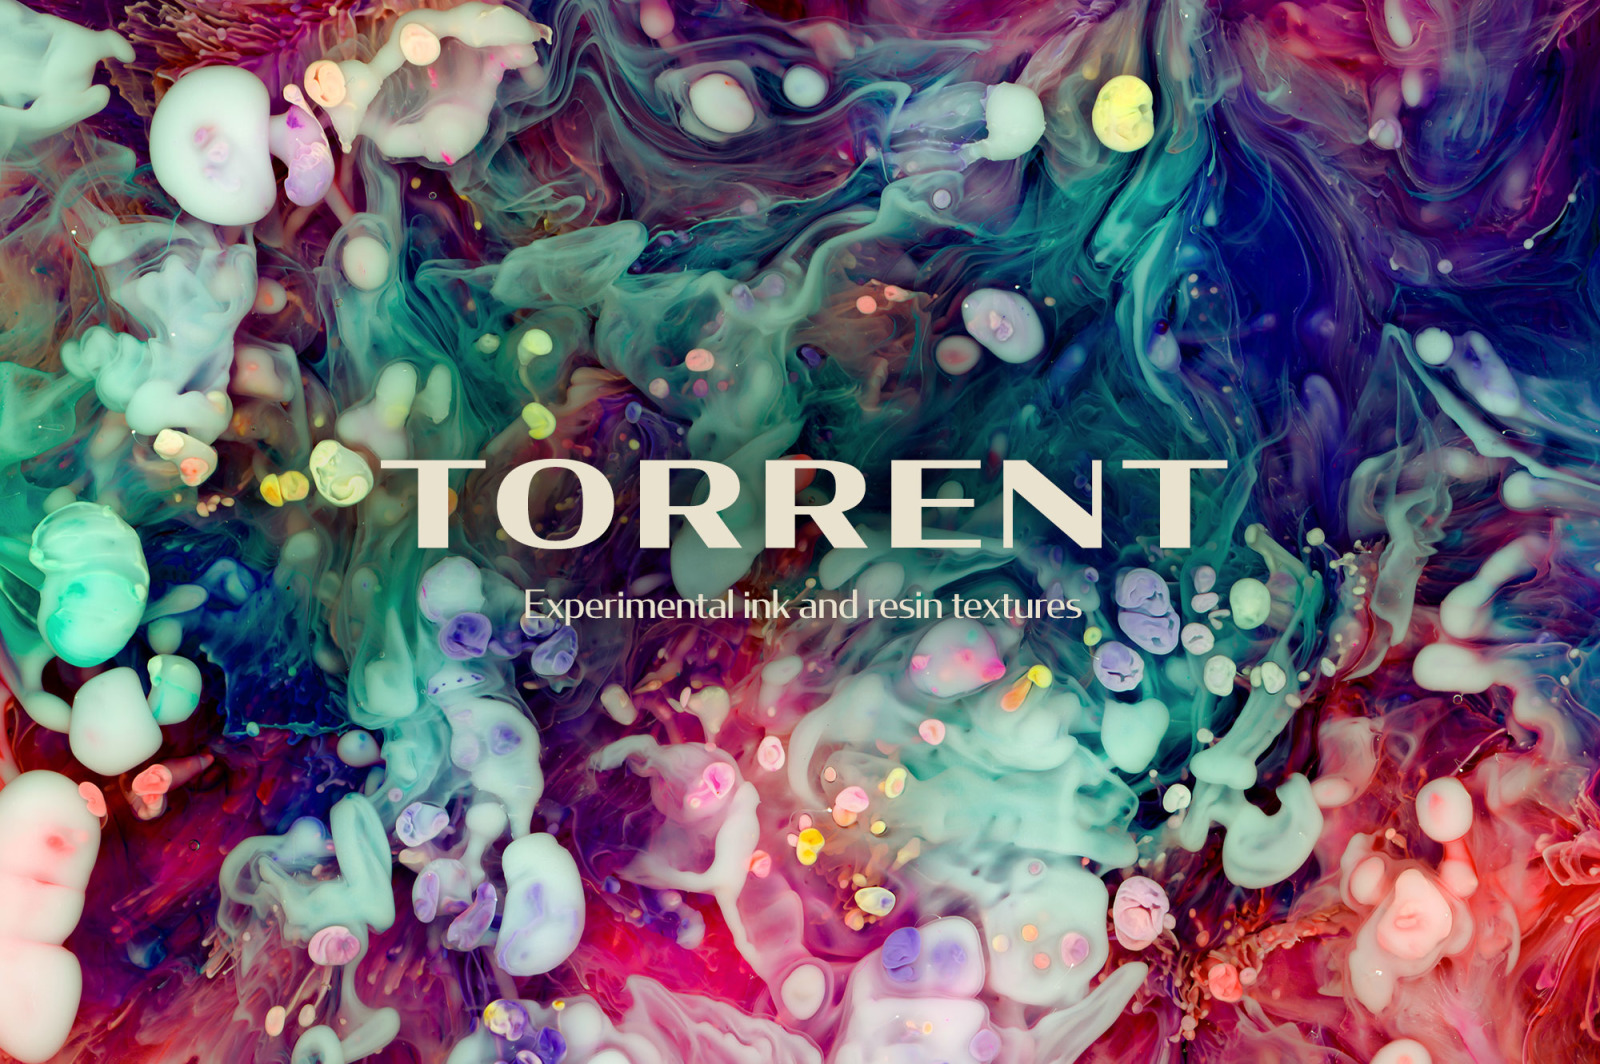 Torrent: Experimental Ink and Resin Textures